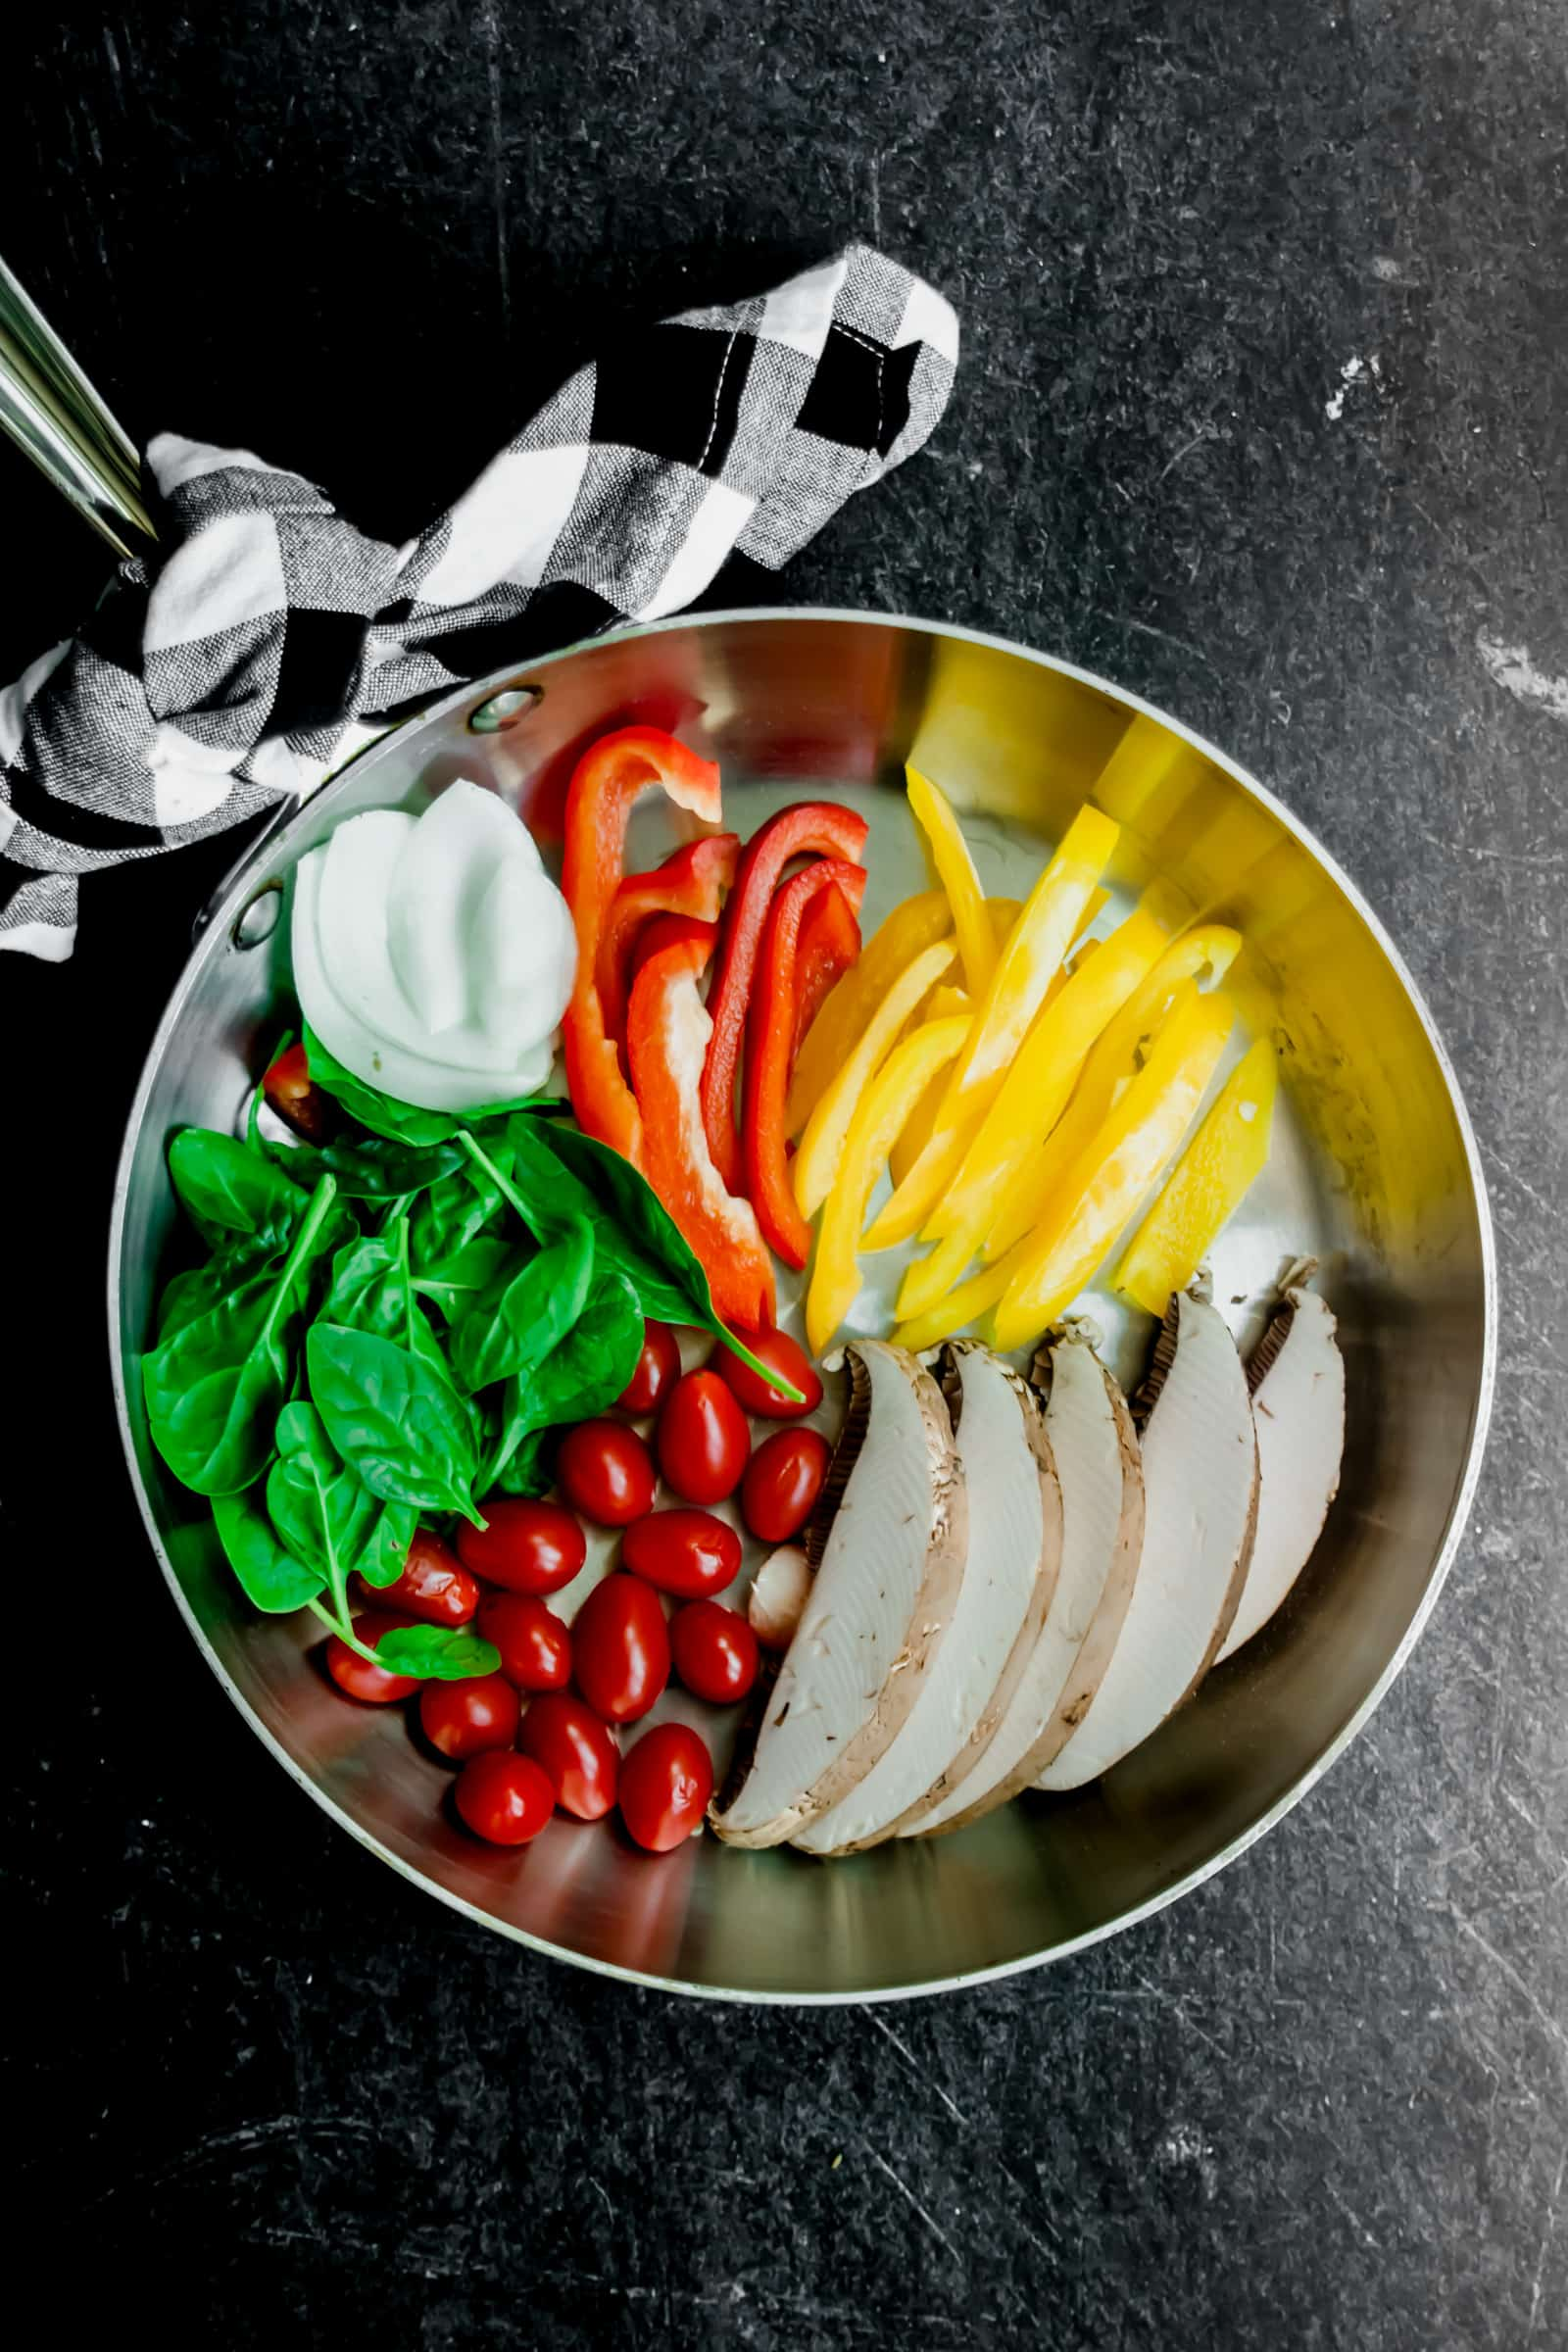 Raw veggies in a stainless skillet with a gingham napkin tied on the handle on a black background